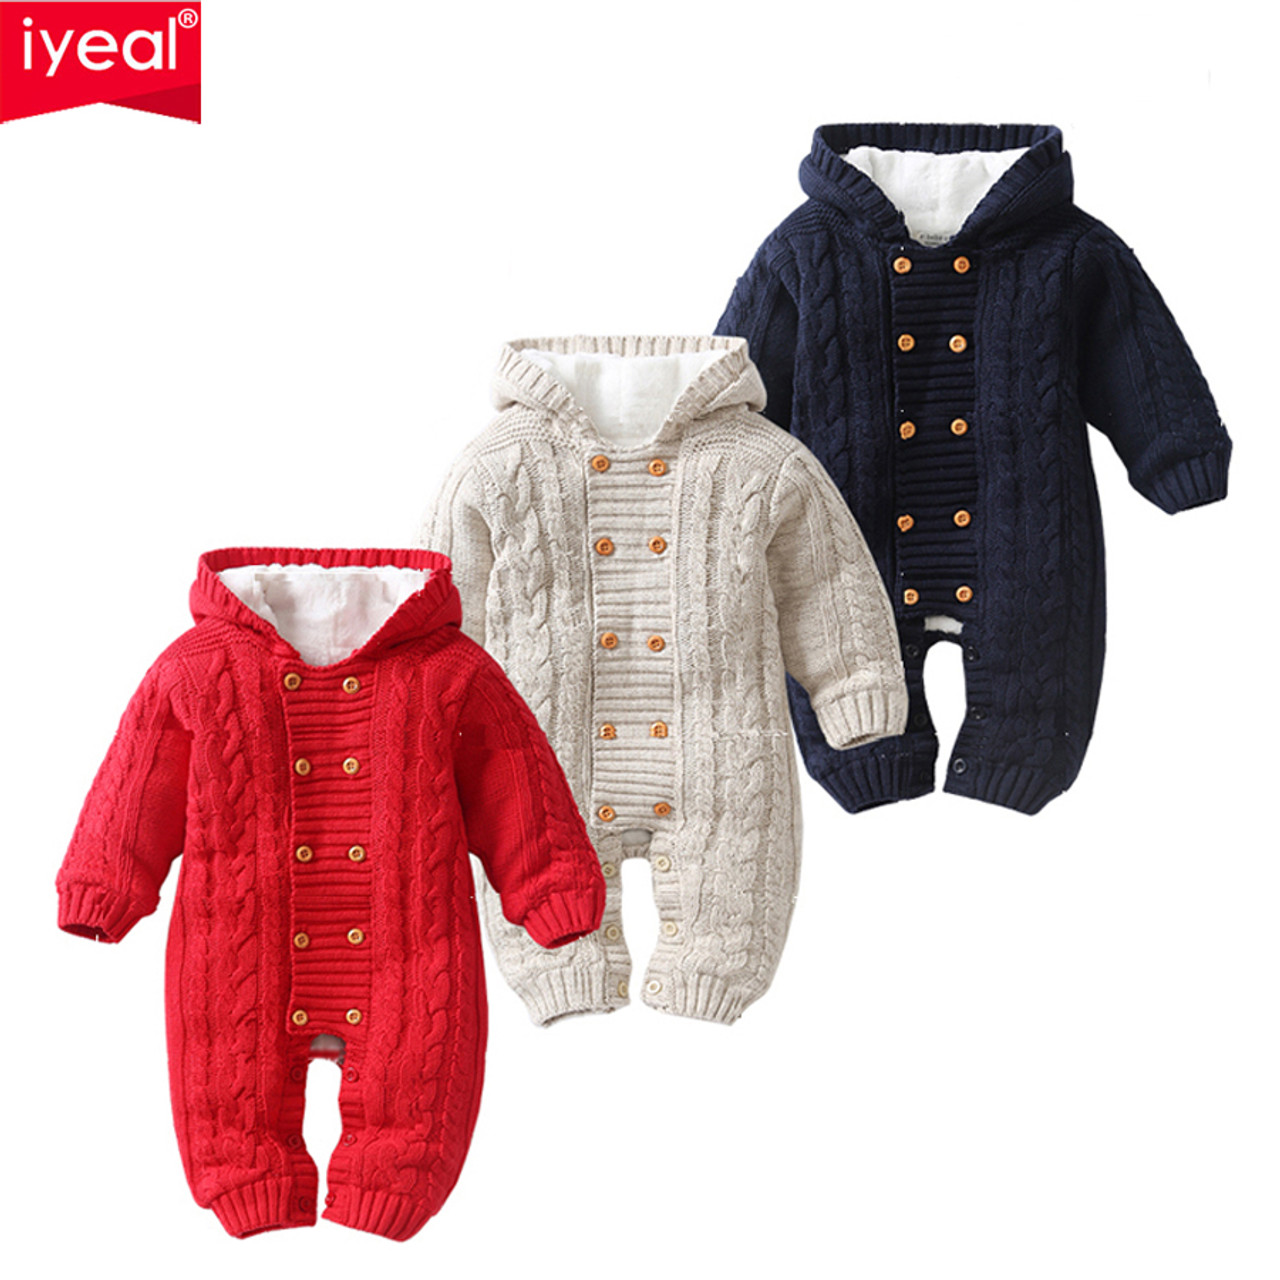 f1405ca5f IYEAL Thick Warm Infant Baby Rompers Winter Clothes Newborn Baby Boy ...